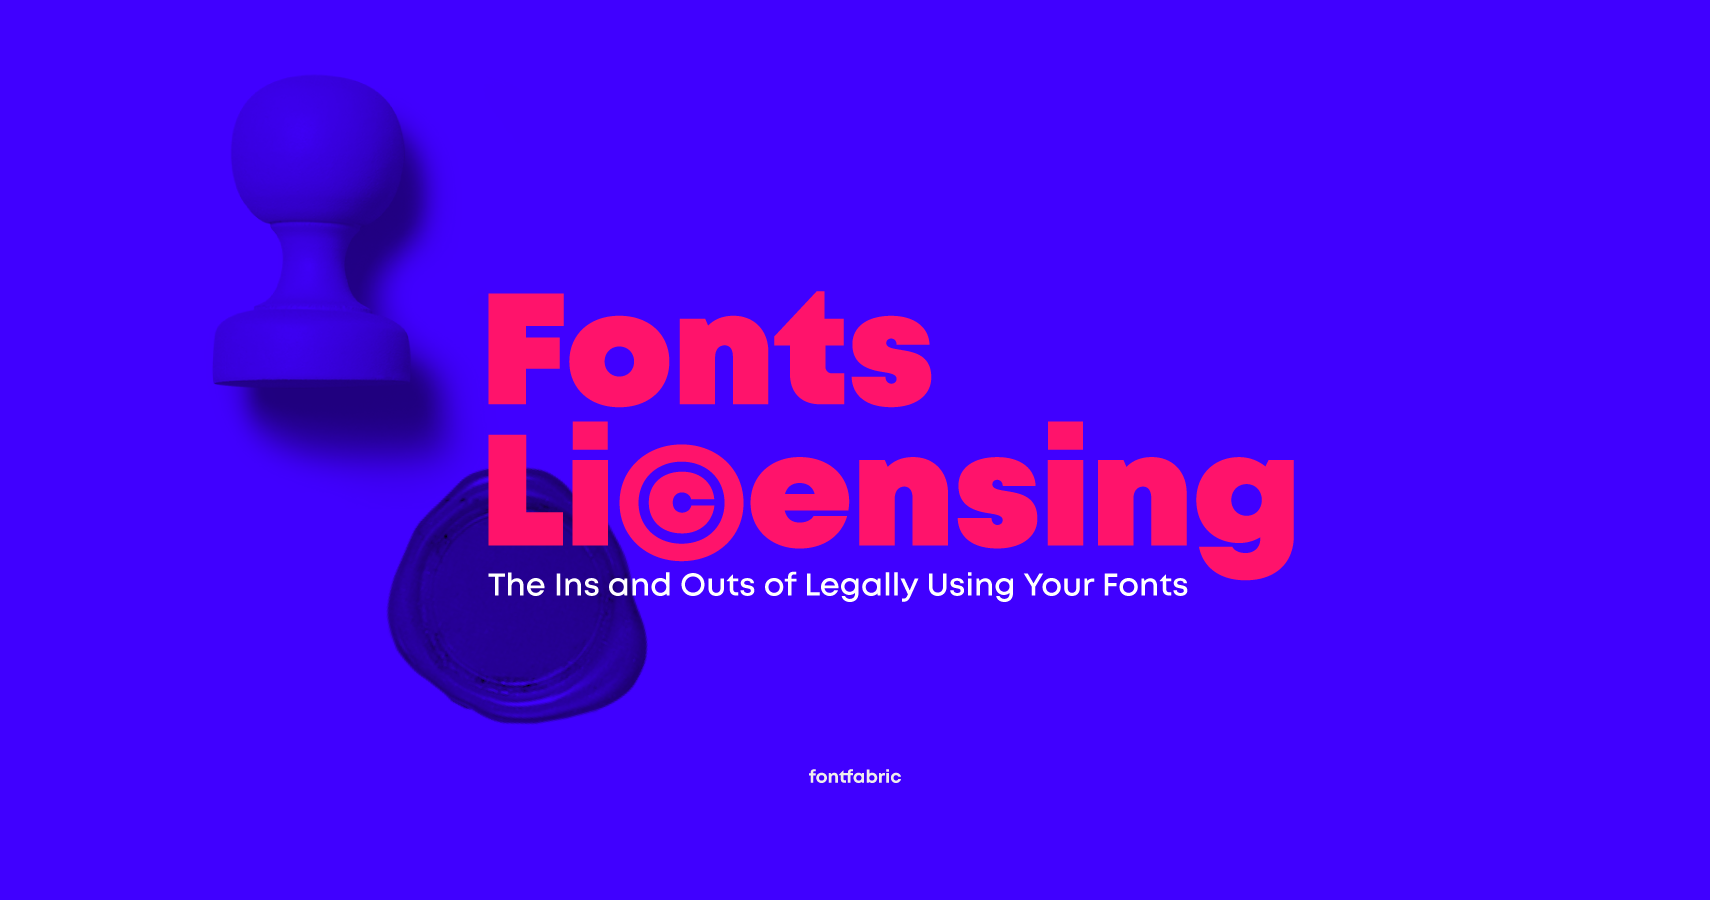 Fonts Licensing: The Ins and Outs of Legally Using Fonts